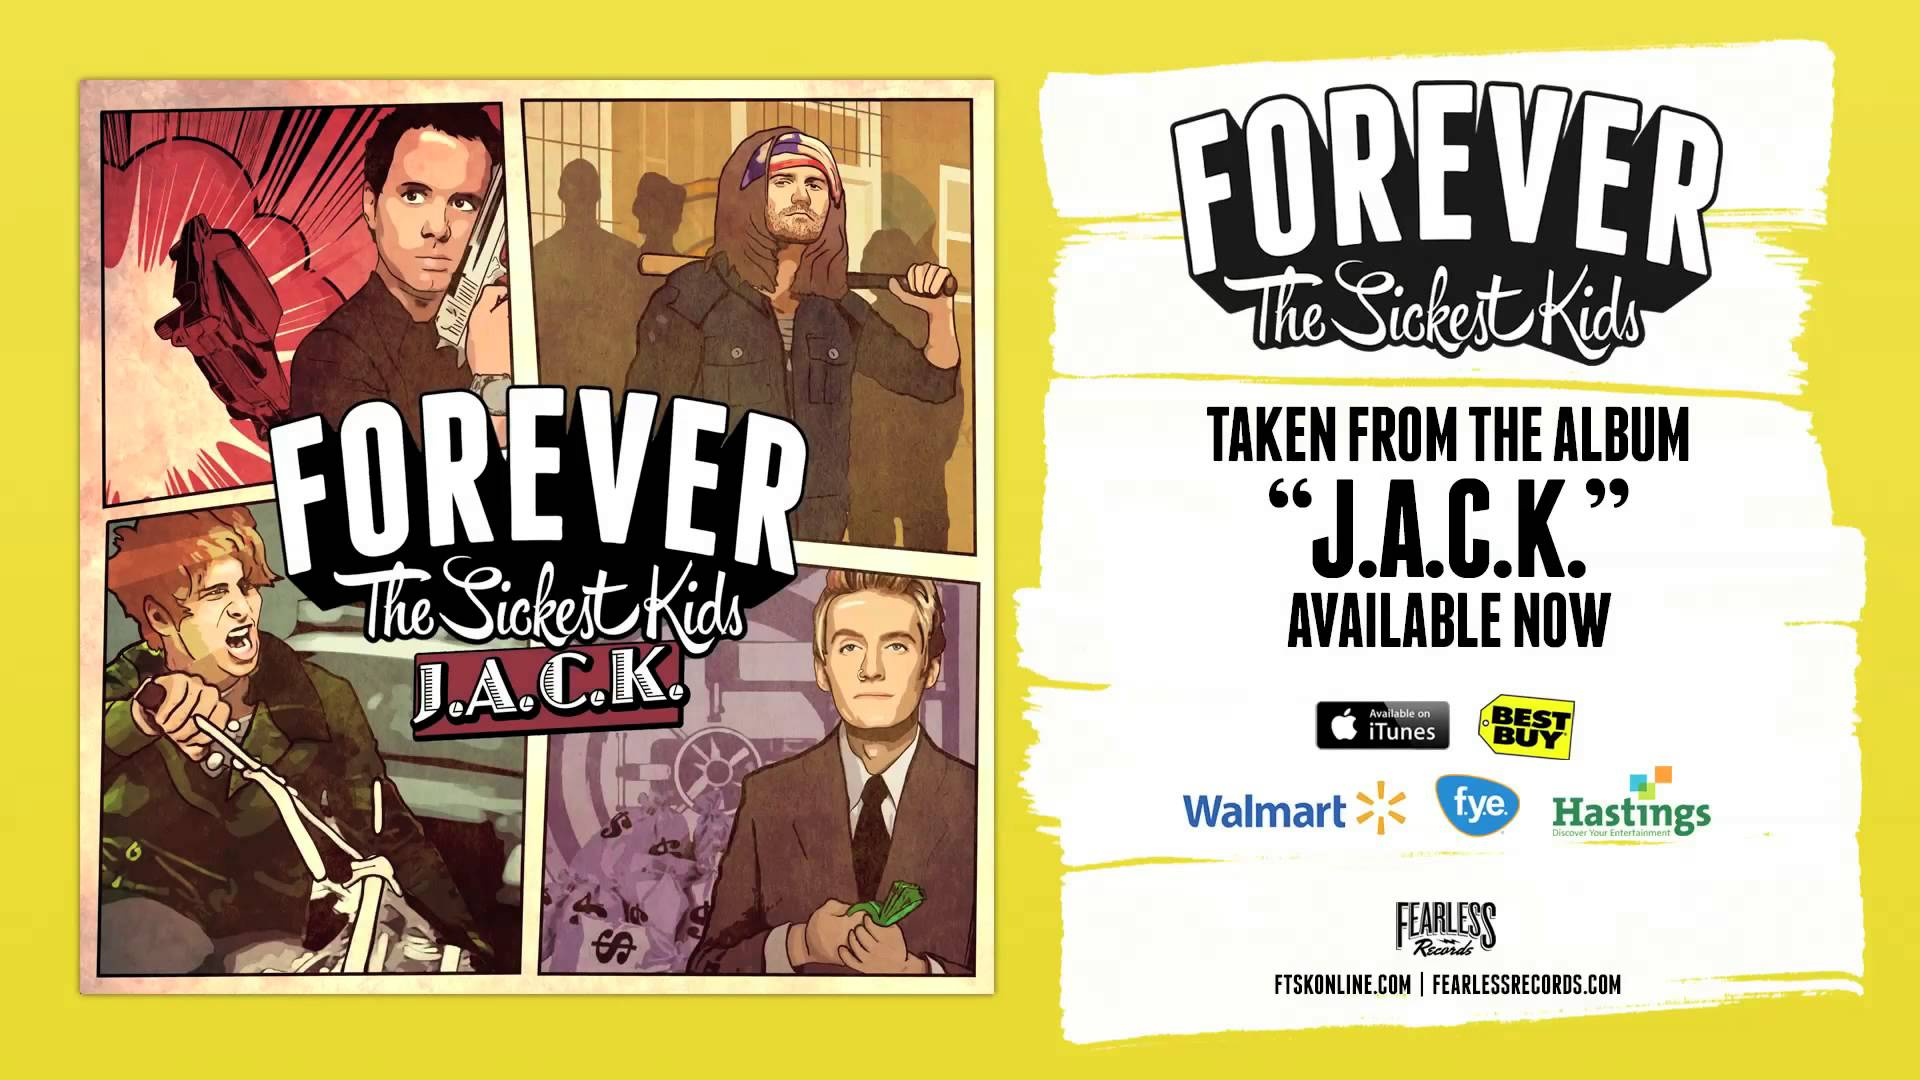 Forever The Sickest Kids - Out Now Album Release